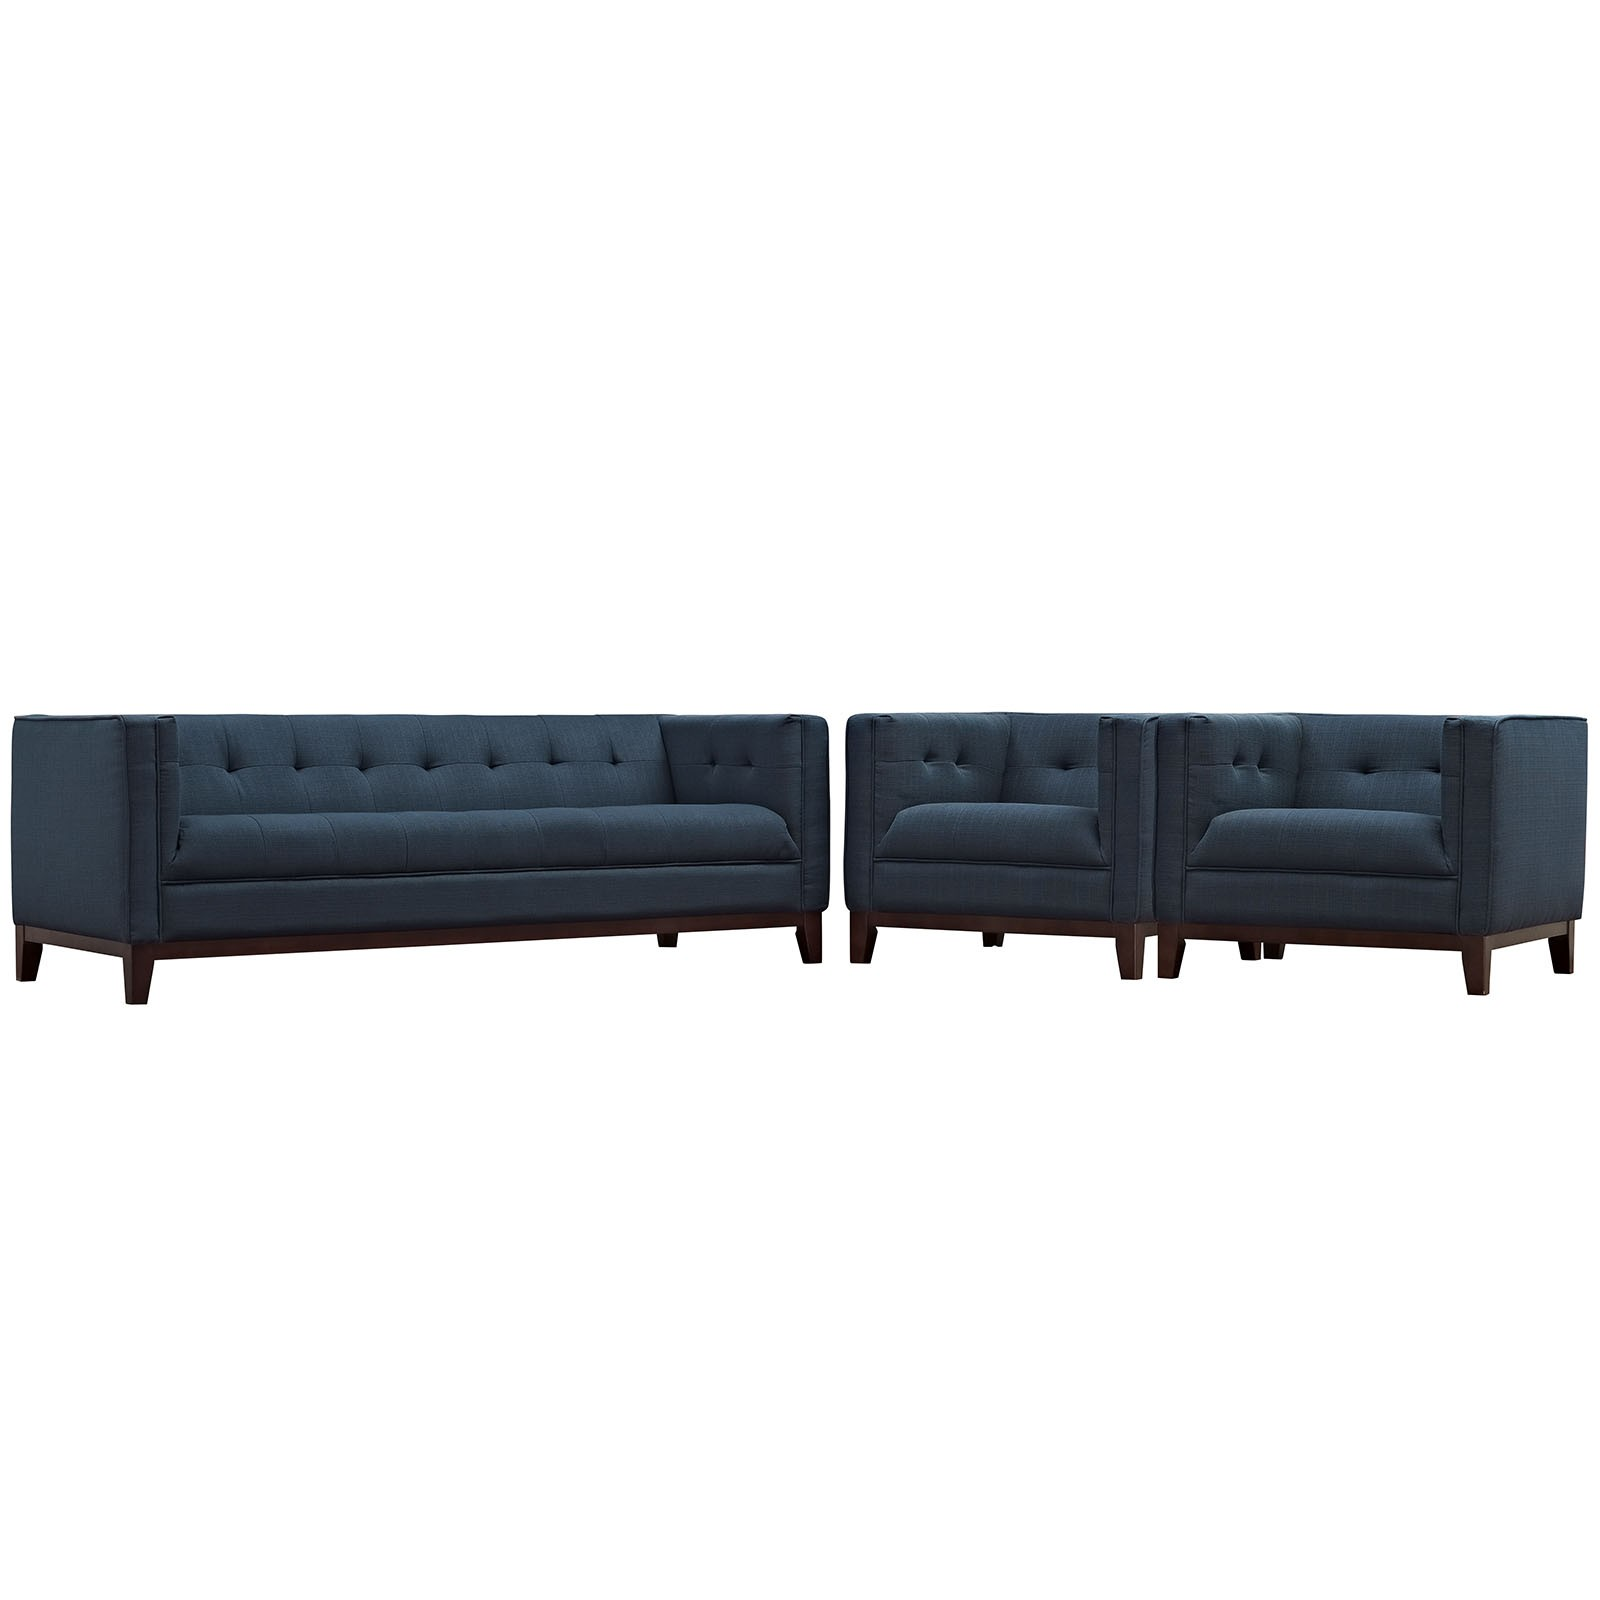 Serve Living Room Set - 3 Piece